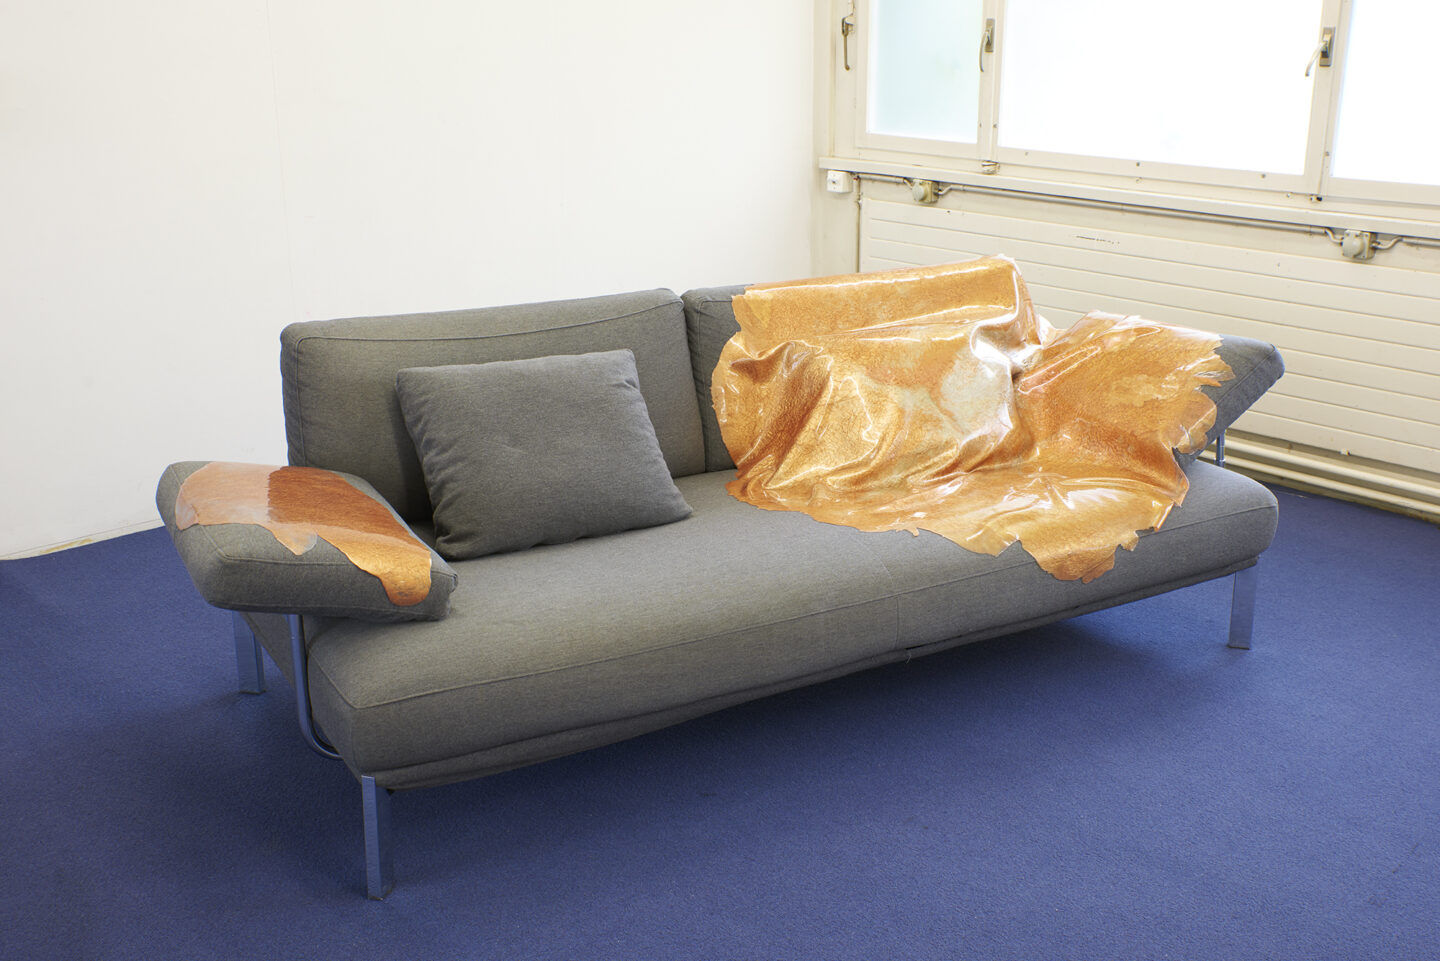 Exhibition View Groupshow «Spiral Arms; view on Ceylan Öztrükflat, flat dragon, sofa edition, 2019» at Longtang, Zurich, 2019 / Photo: James Bantone / Courtesy: the artists and Longtang, Zurich